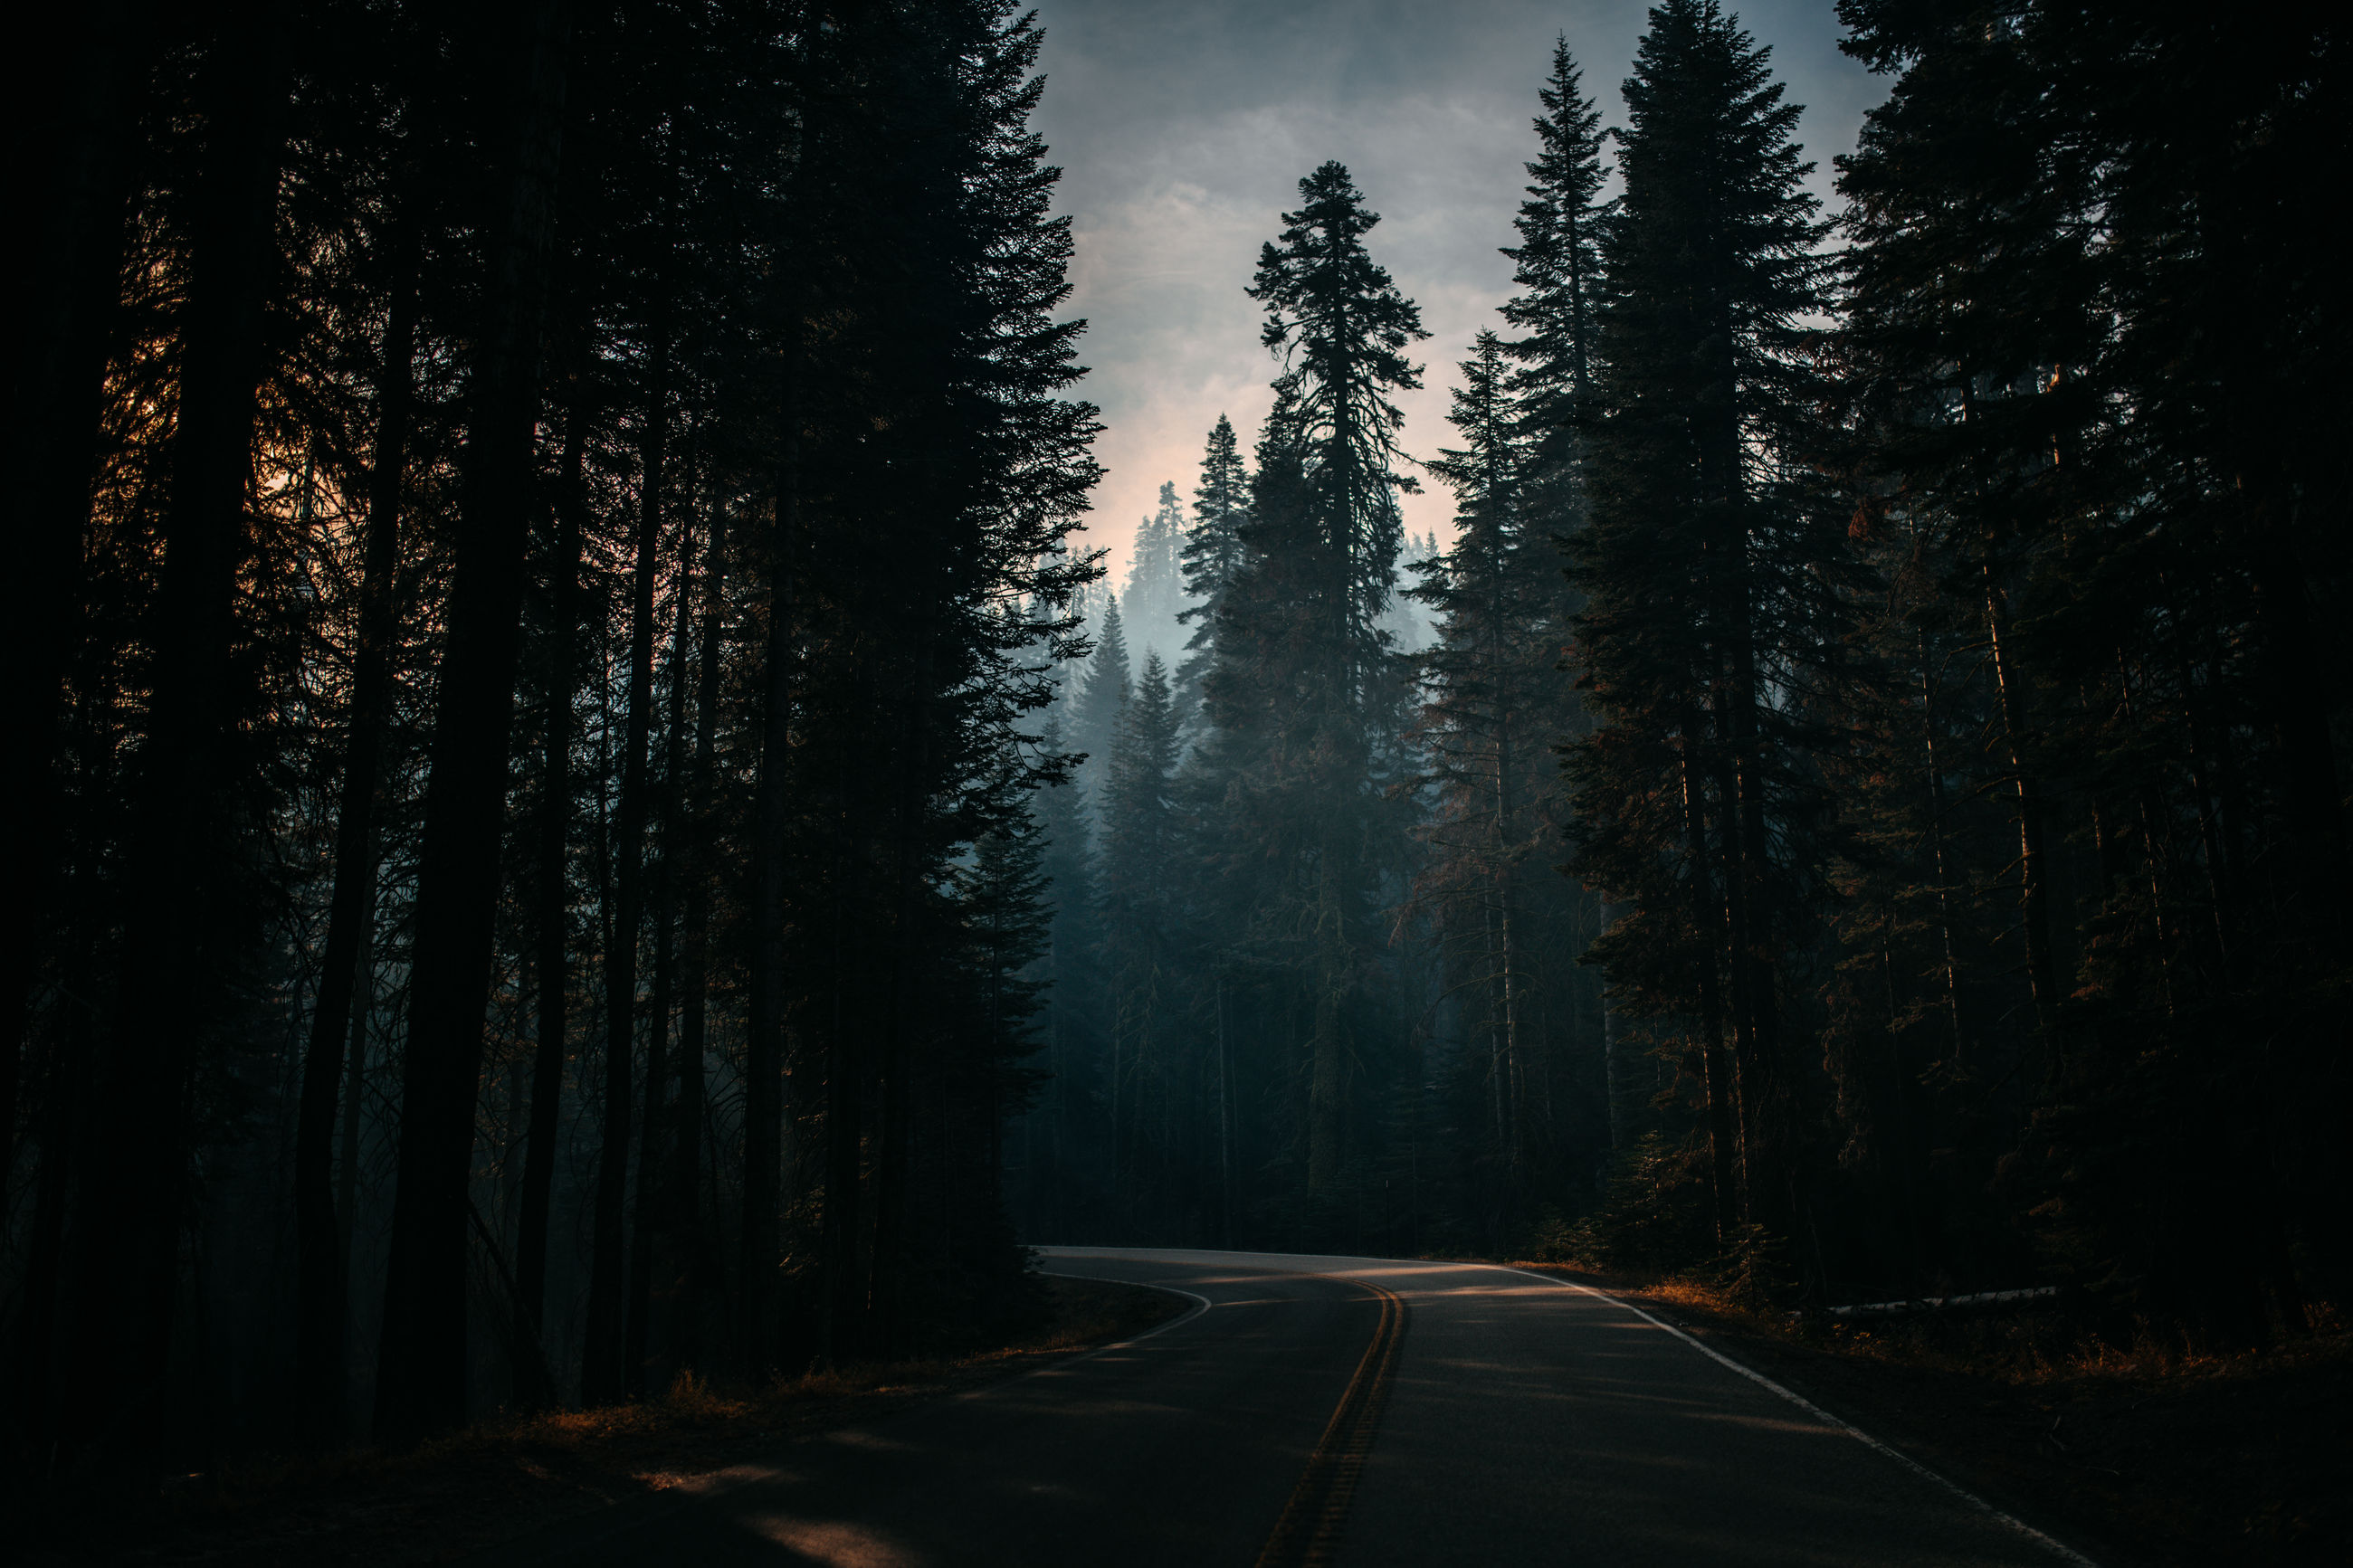 tree, forest, plant, road, direction, the way forward, nature, land, beauty in nature, tranquility, no people, tranquil scene, woodland, transportation, marking, road marking, sign, symbol, non-urban scene, diminishing perspective, dividing line, long